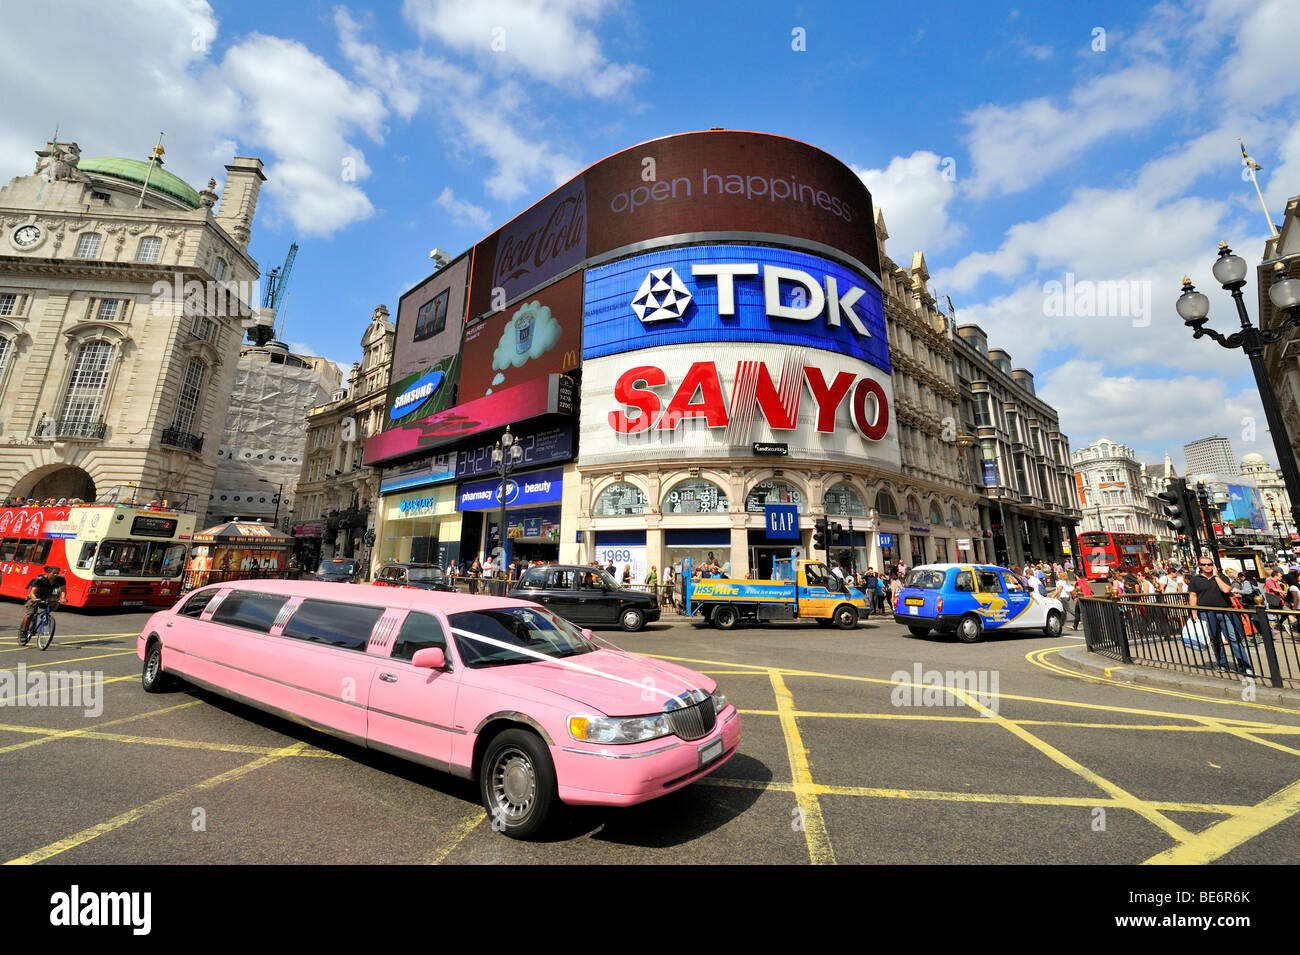 Street scene on Piccadilly Circus, London, England, United Kingdom, Europe - Stock Image